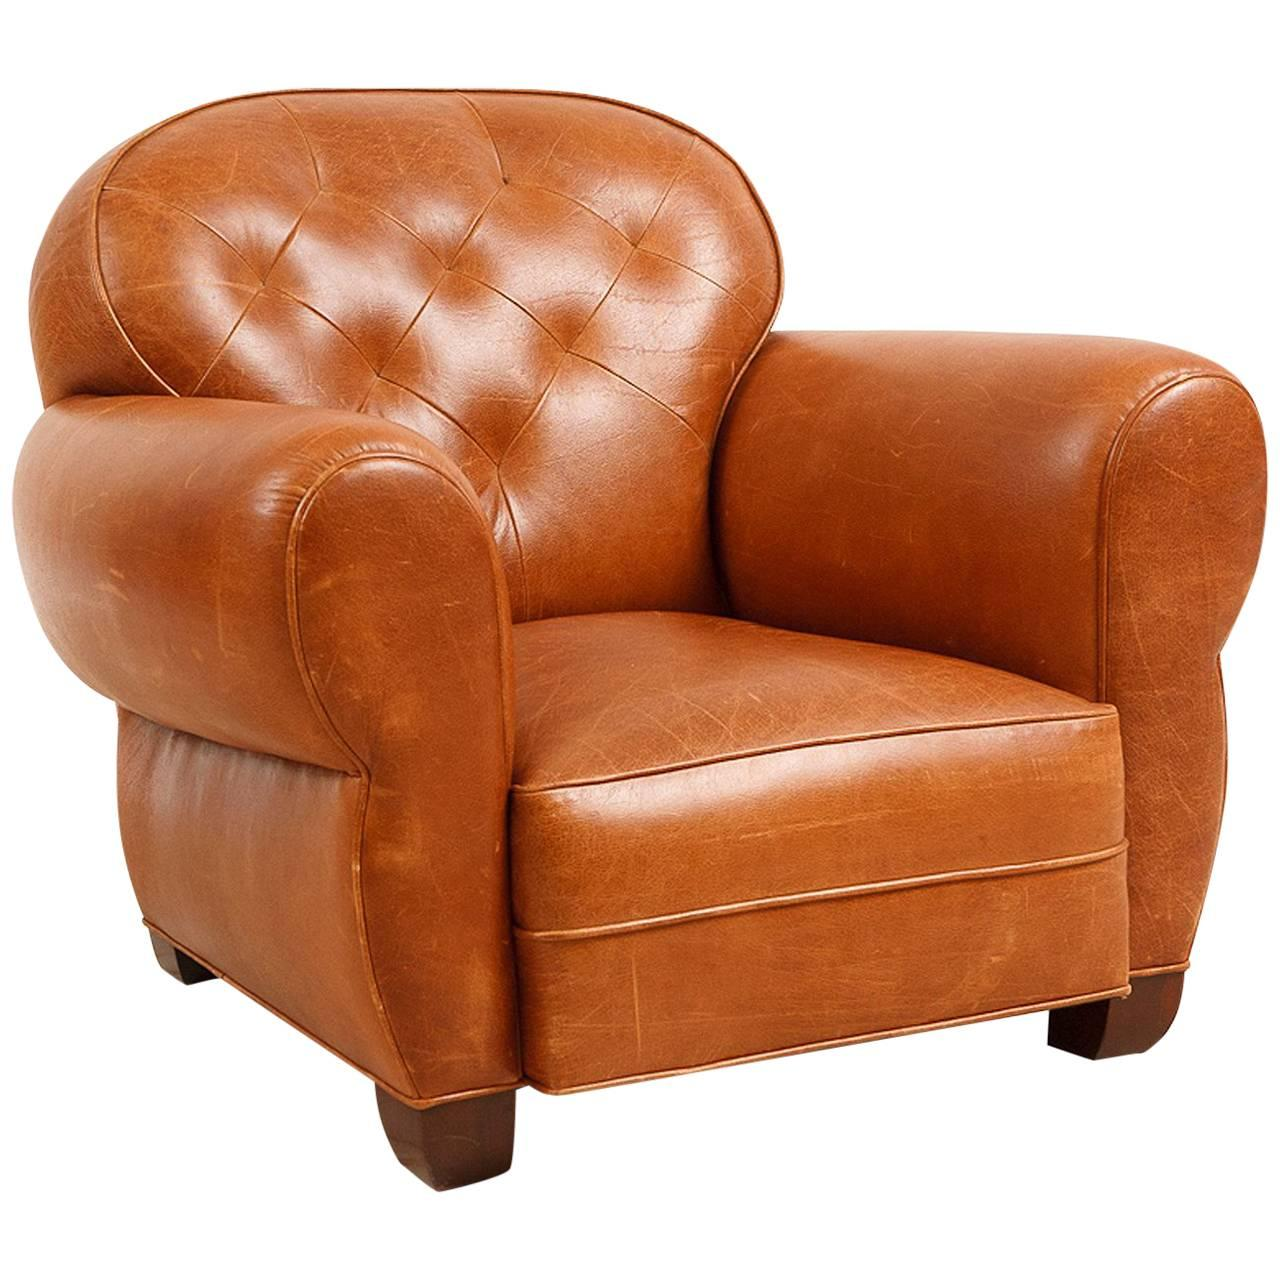 Custom Made Art Deco Style Buffalo Hide Leather Club Chair With Tufted Back  For Sale